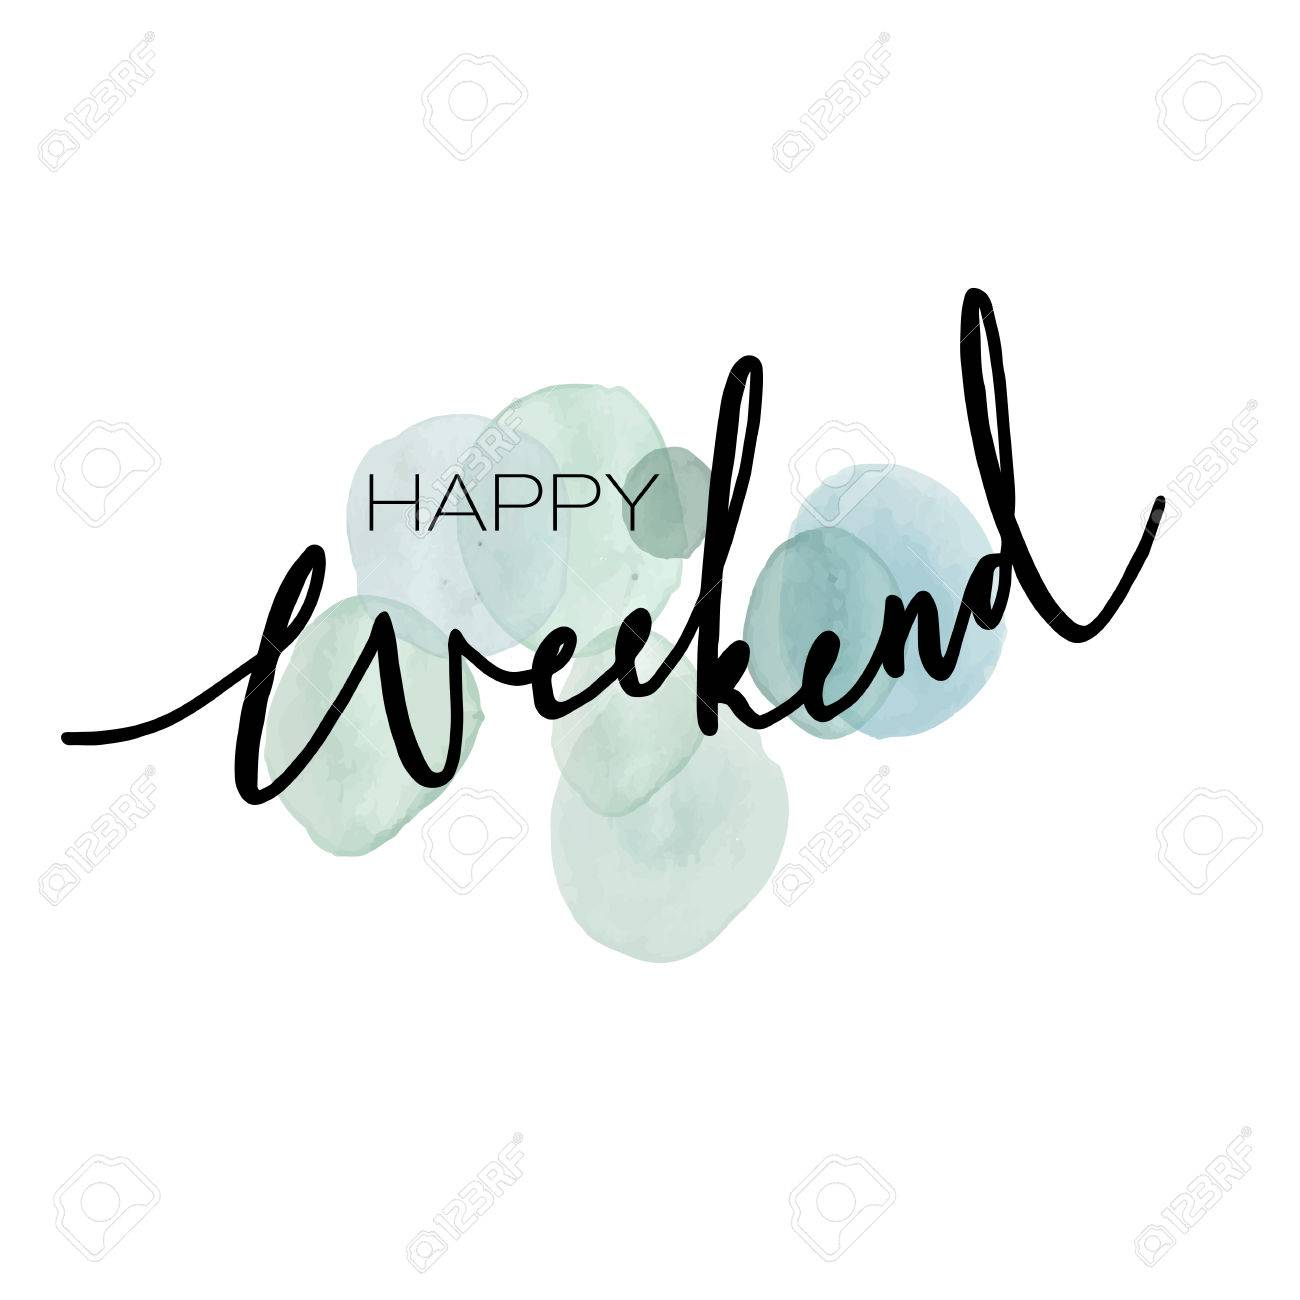 Hand drawn lettering happy weekend design for greeting cards happy weekend design for greeting cards posters print invitations m4hsunfo